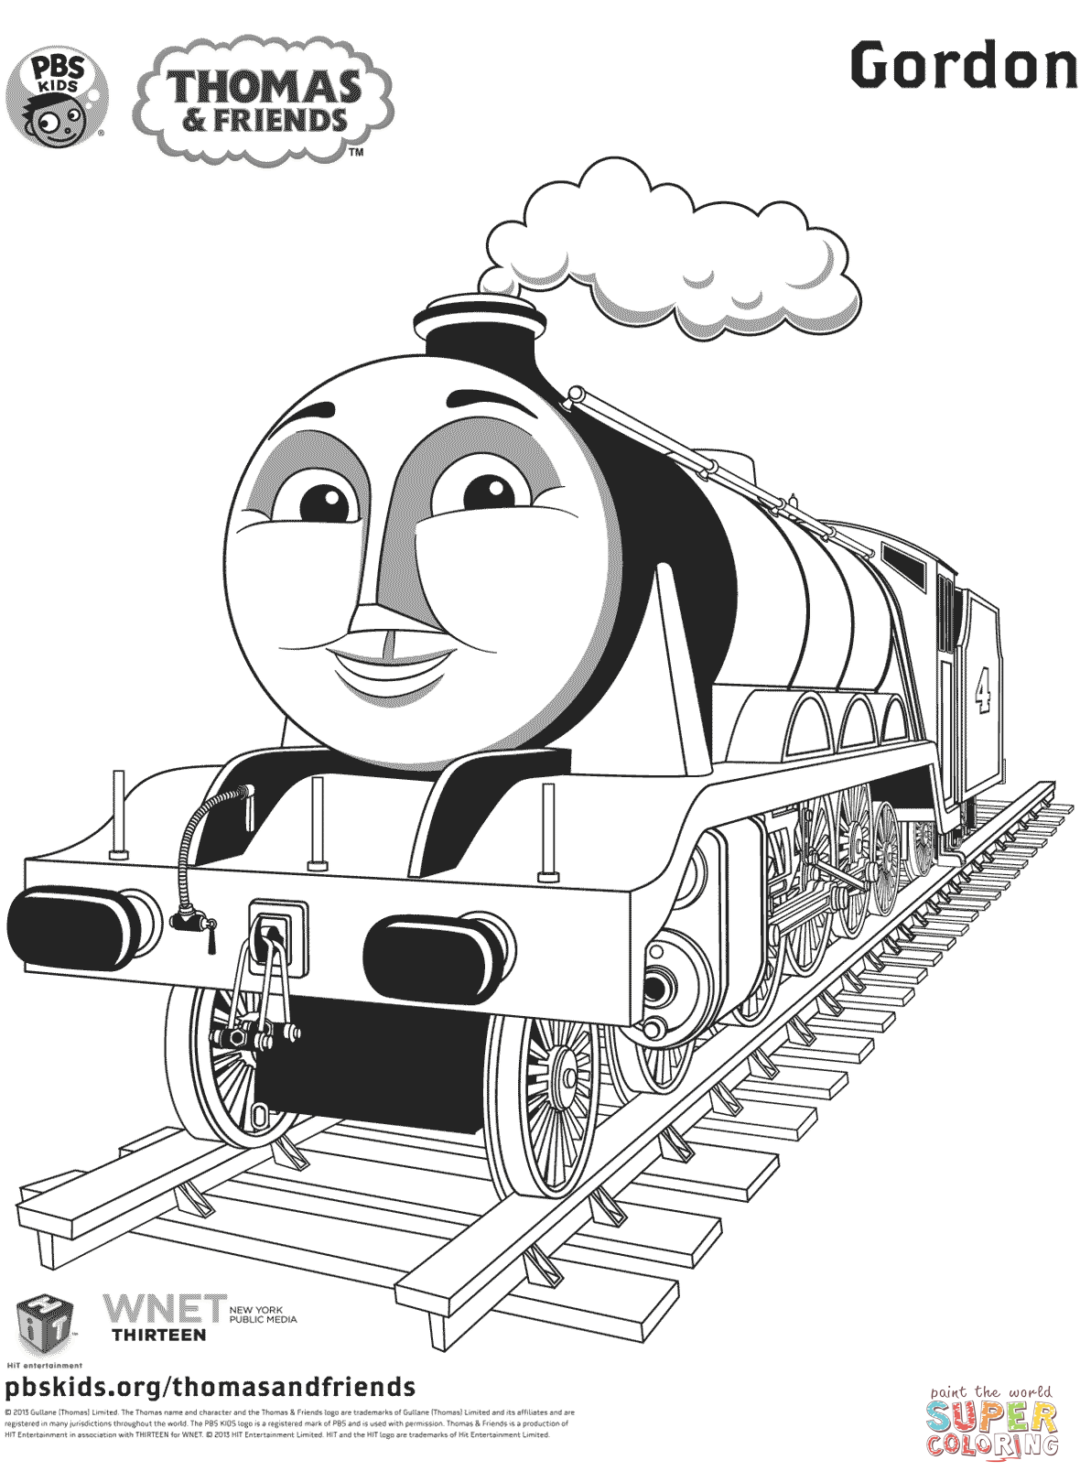 thomas and friends coloring pages thomas and friends printable coloring pages google and thomas friends coloring pages